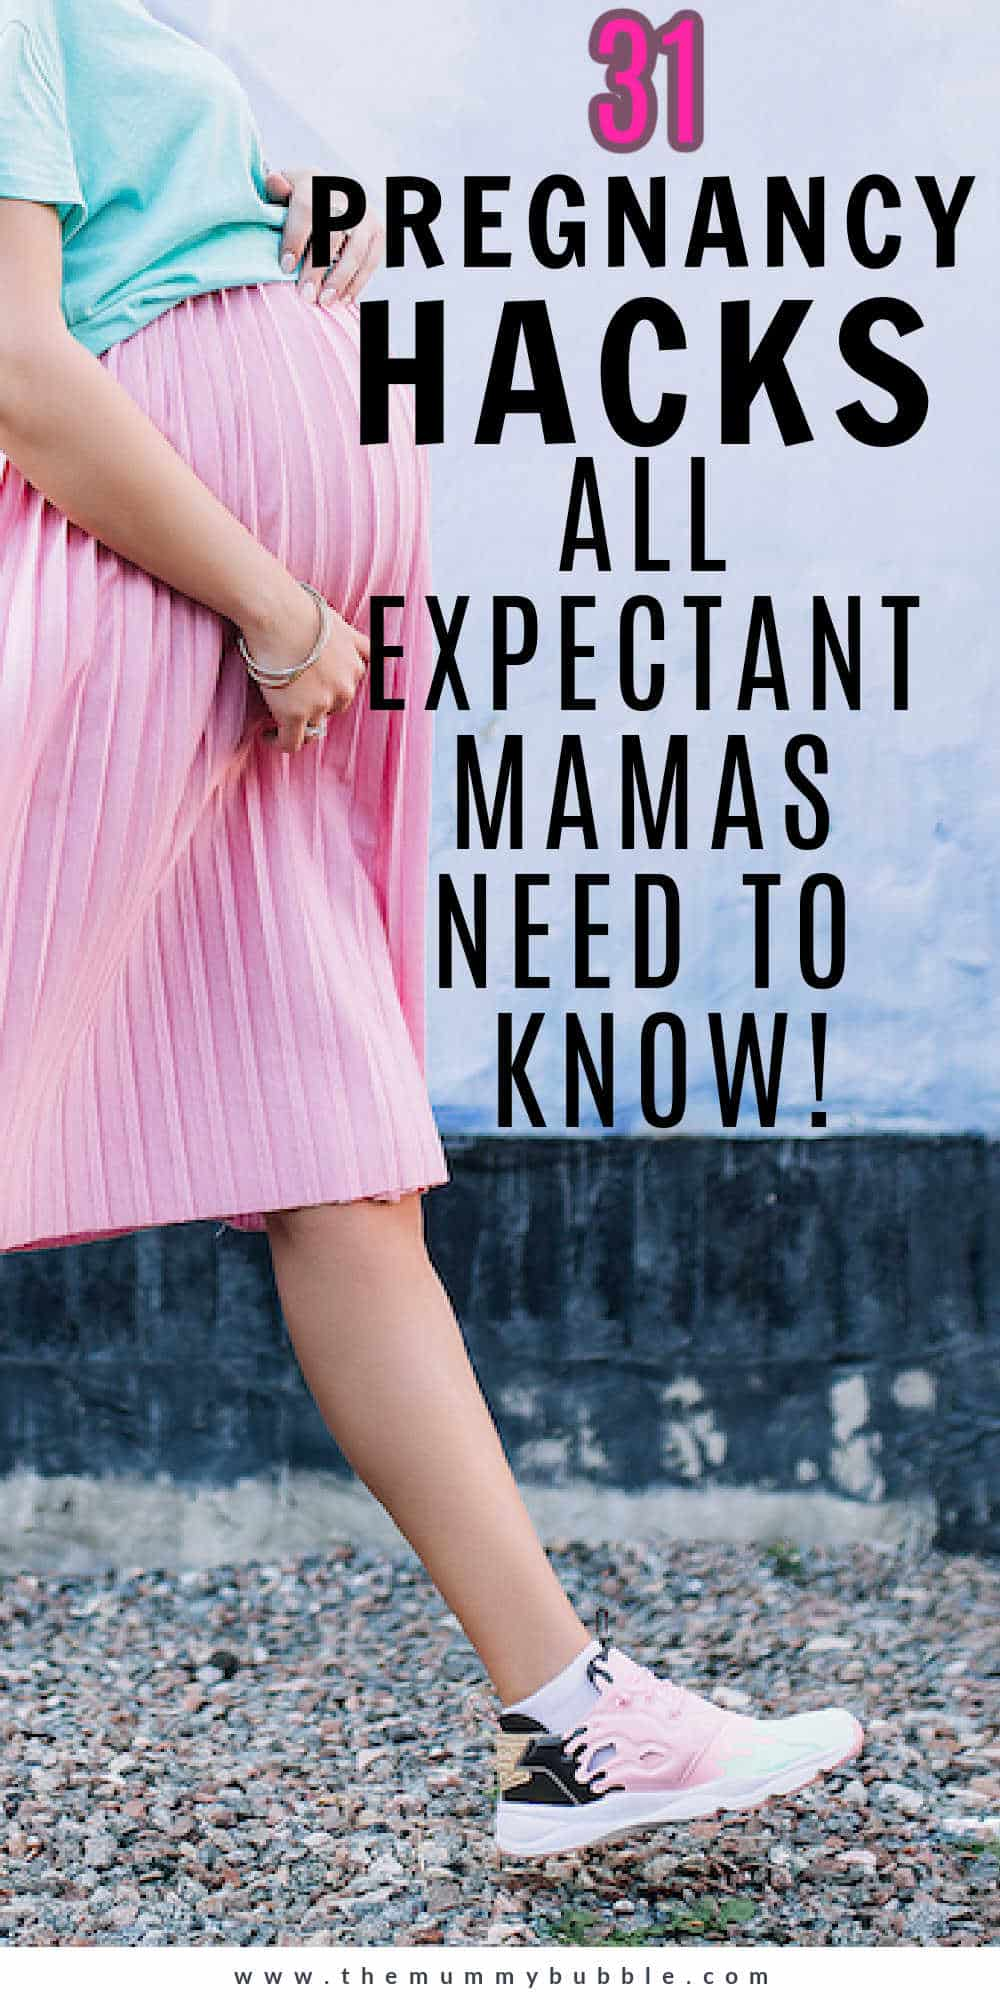 Pregnancy hacks for pregnant mamas-to-be